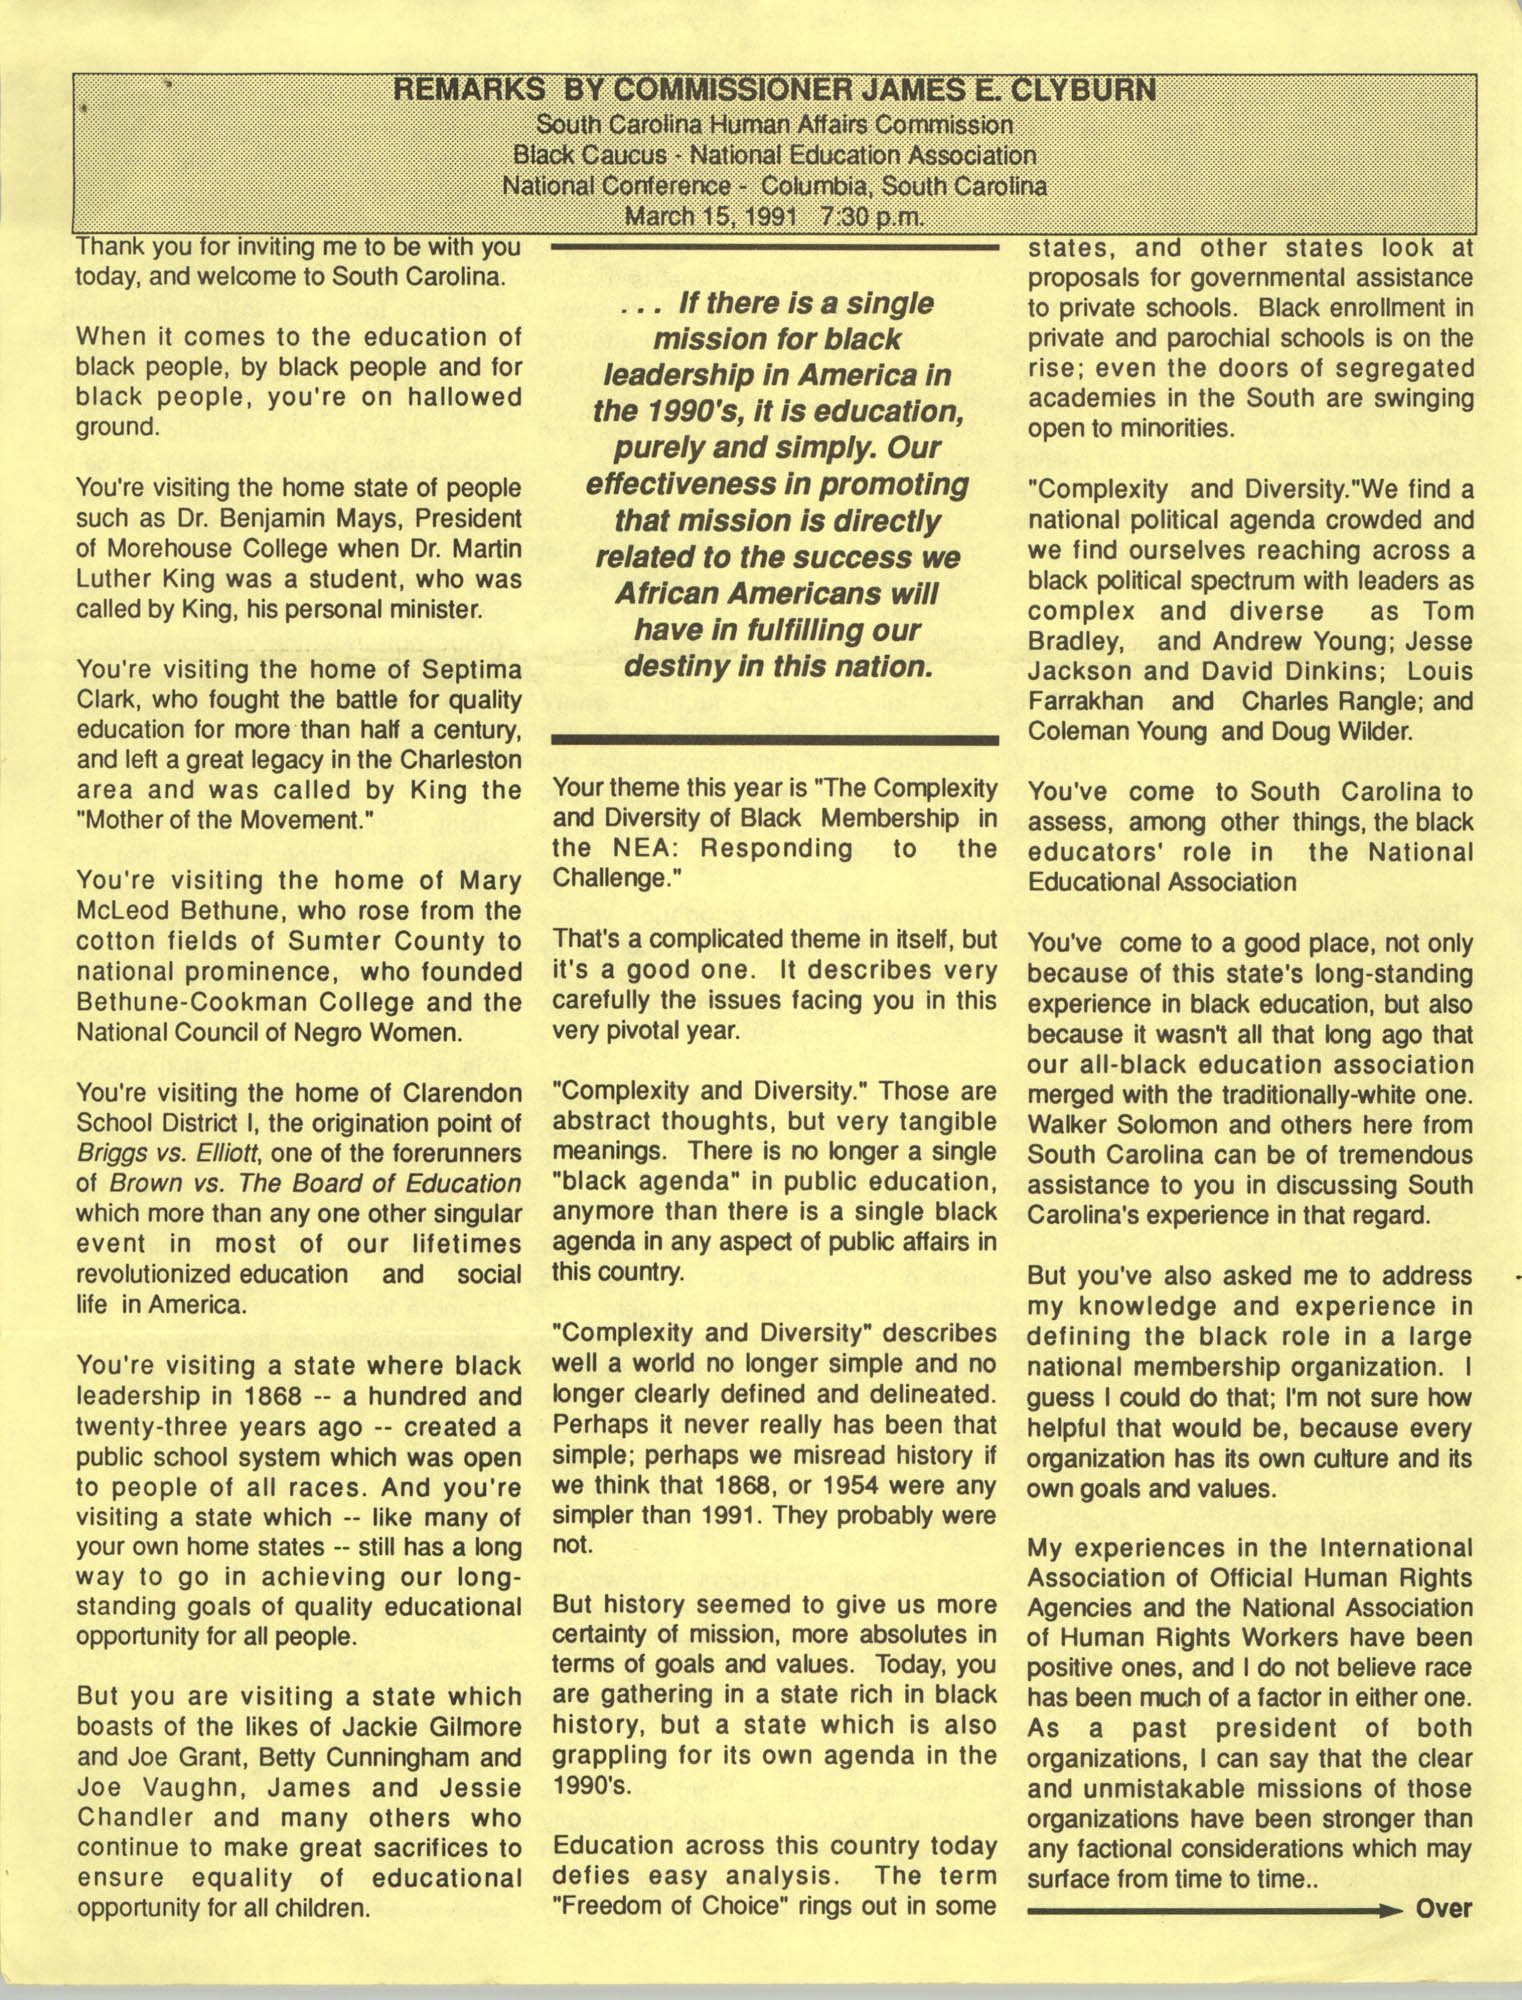 Remarks by Commissioner James E. Clyburn, South Carolina Human Affairs Commission, Black Caucus-National Education Association, National Conference, Columbia, South Carolina, March 15, 1991